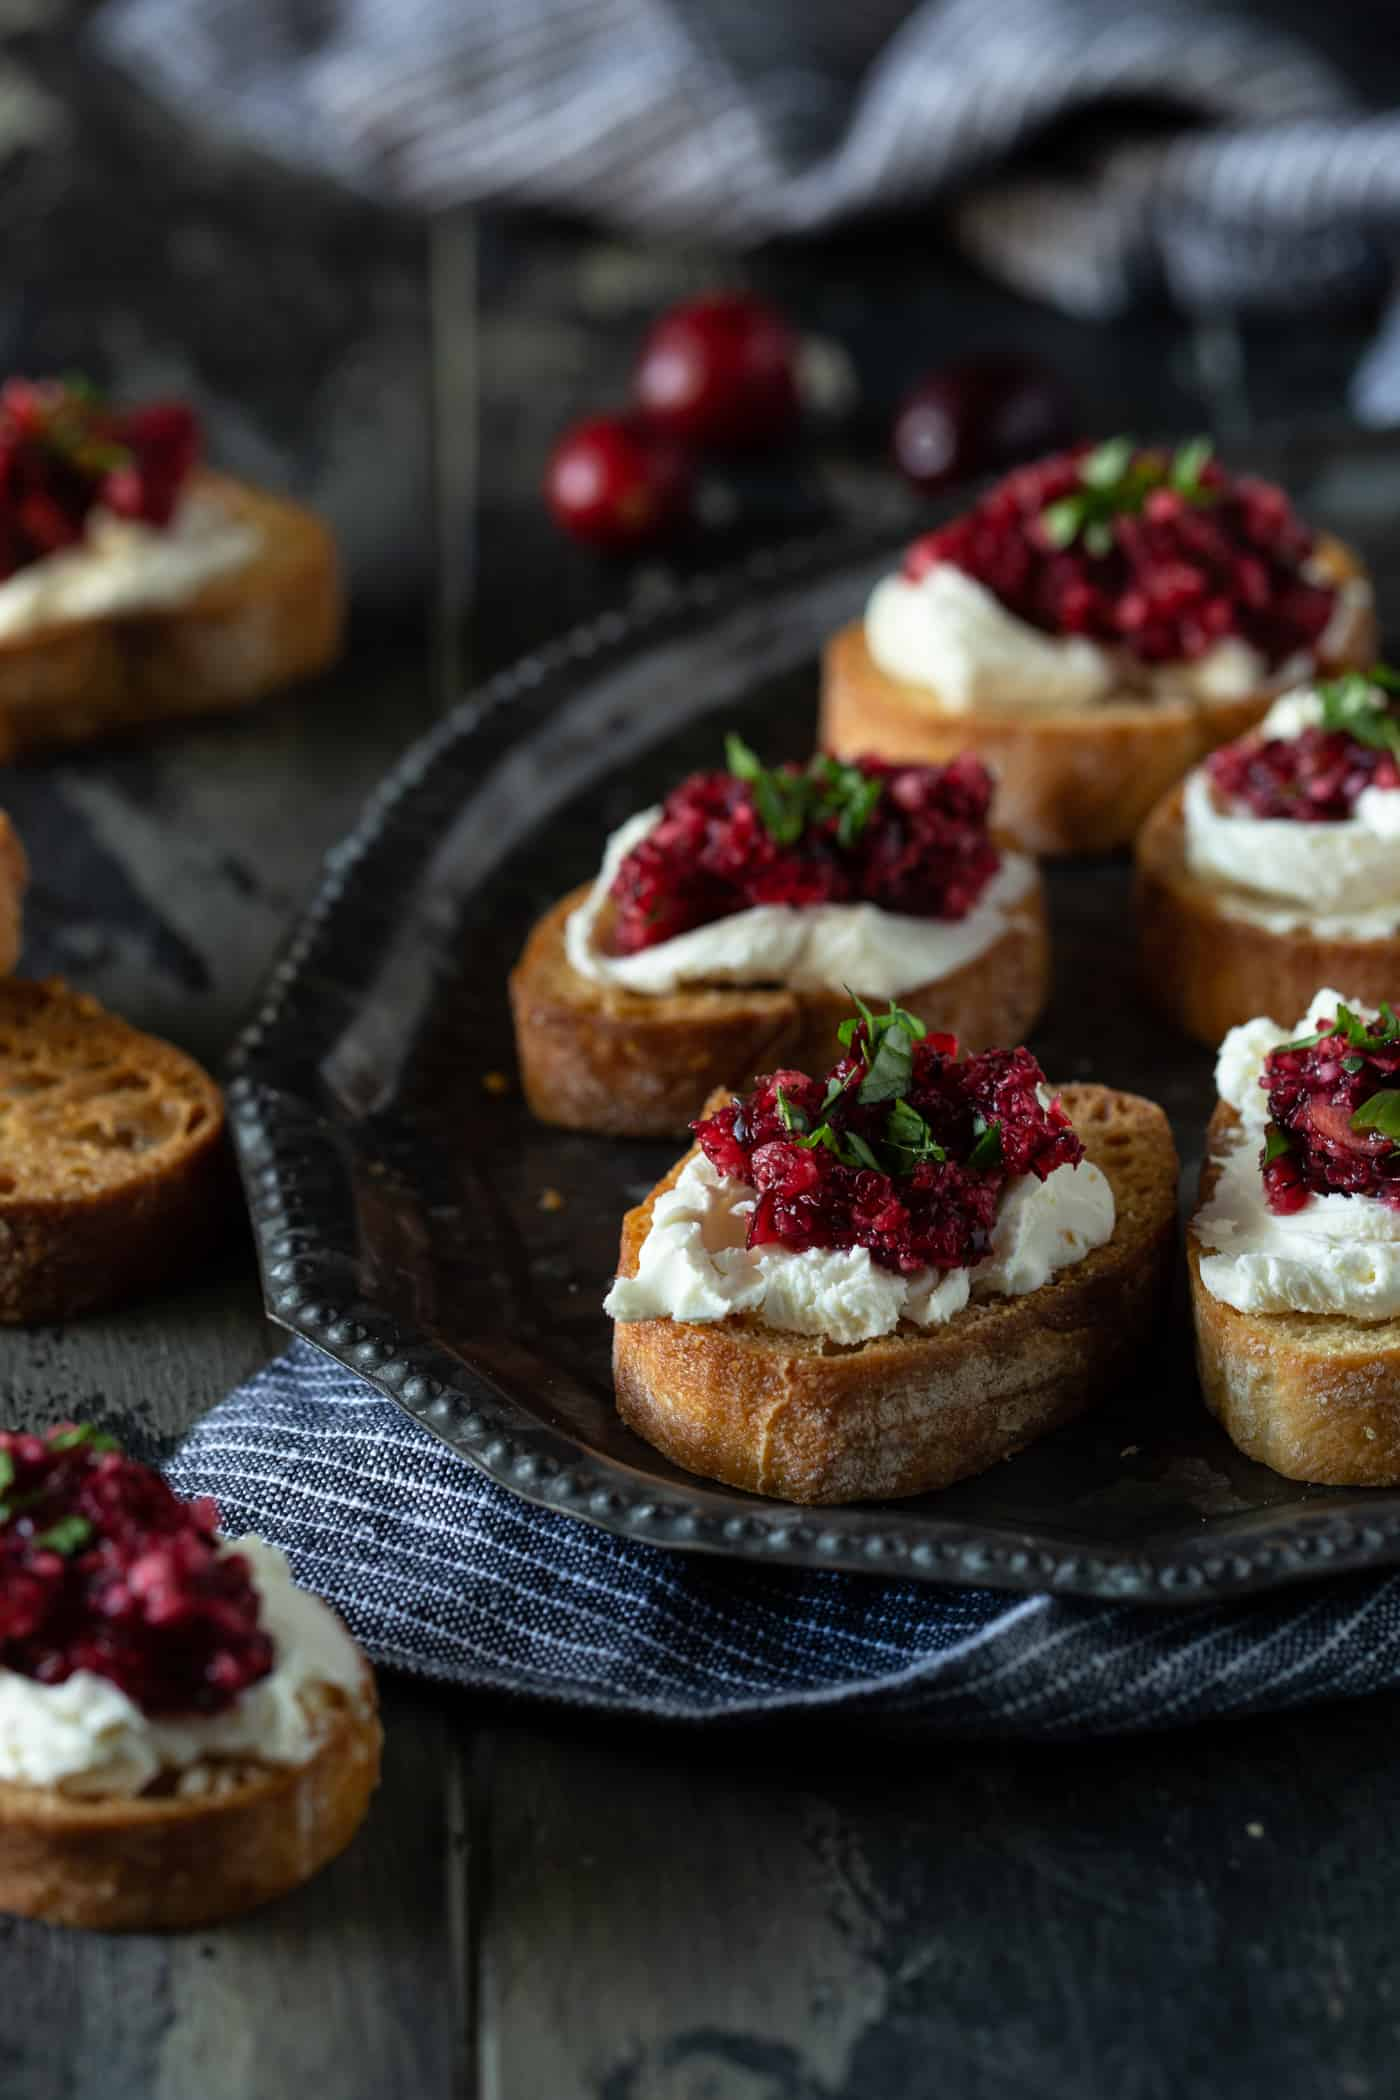 A plate of food with crostini on a table, with Cheese and Cranberry.